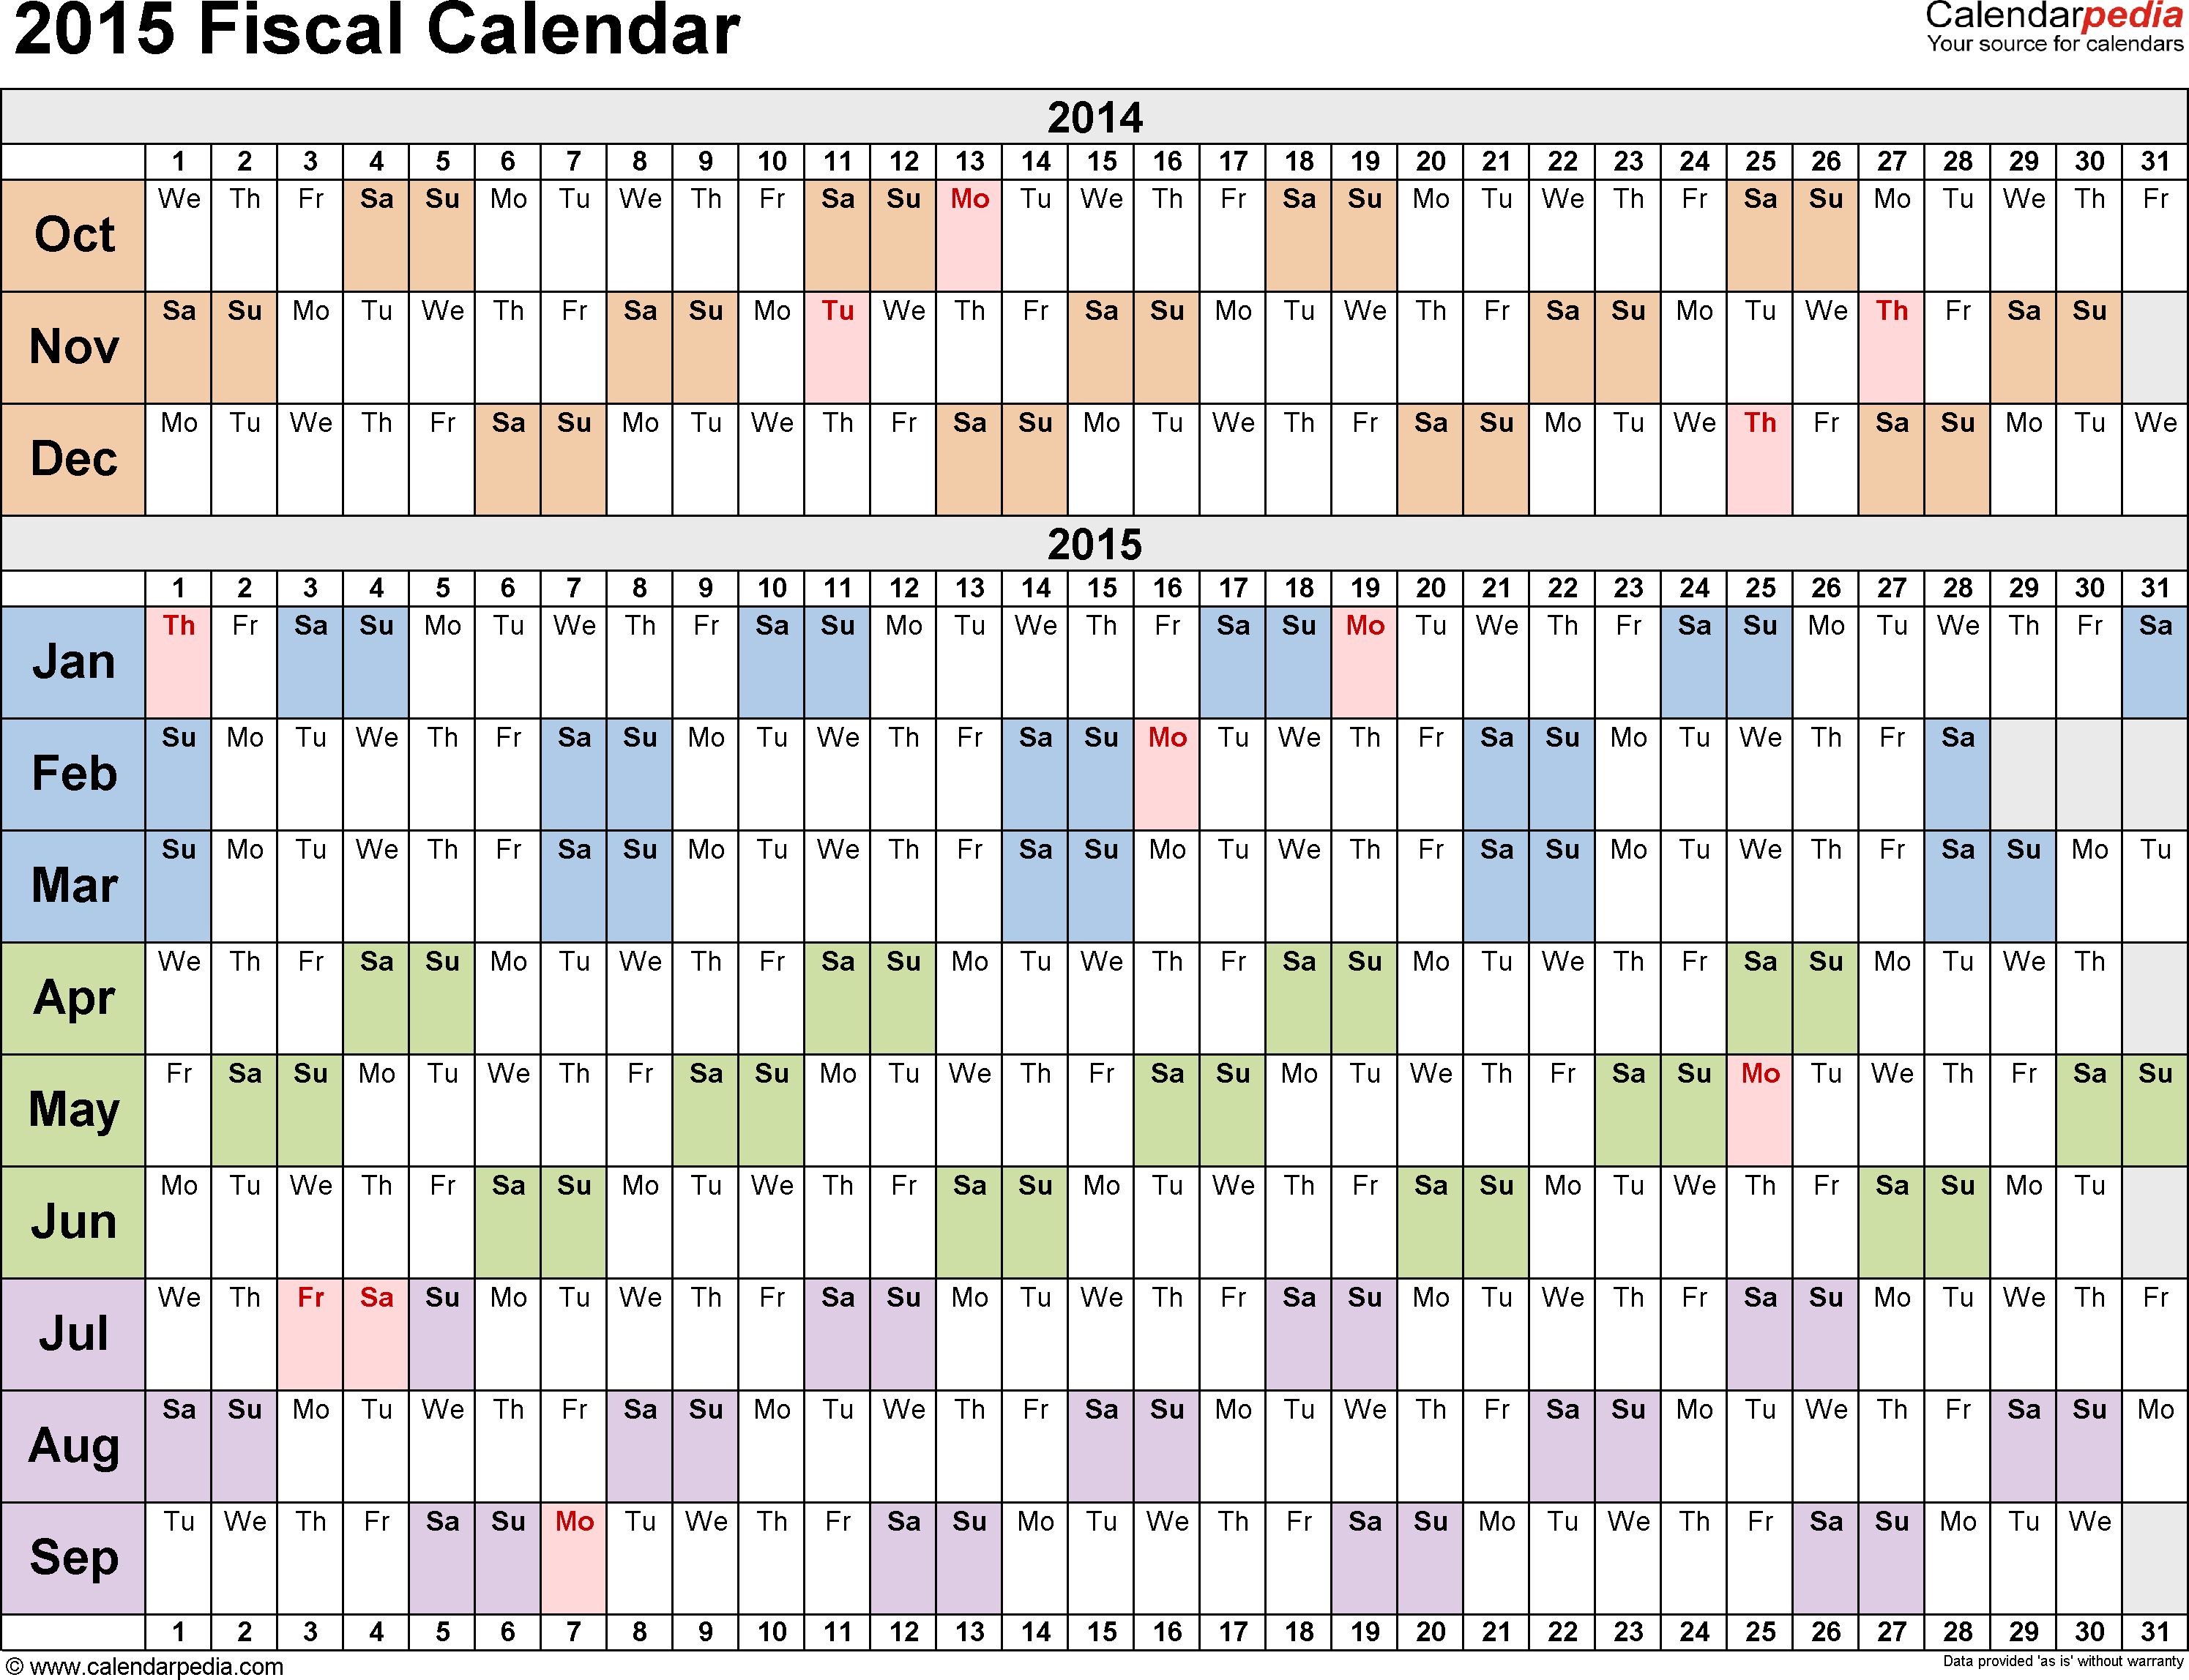 Download Template 3: Fiscal year calendar 2015 for Microsoft Excel (.xlsx file), landscape, 1 page, linear